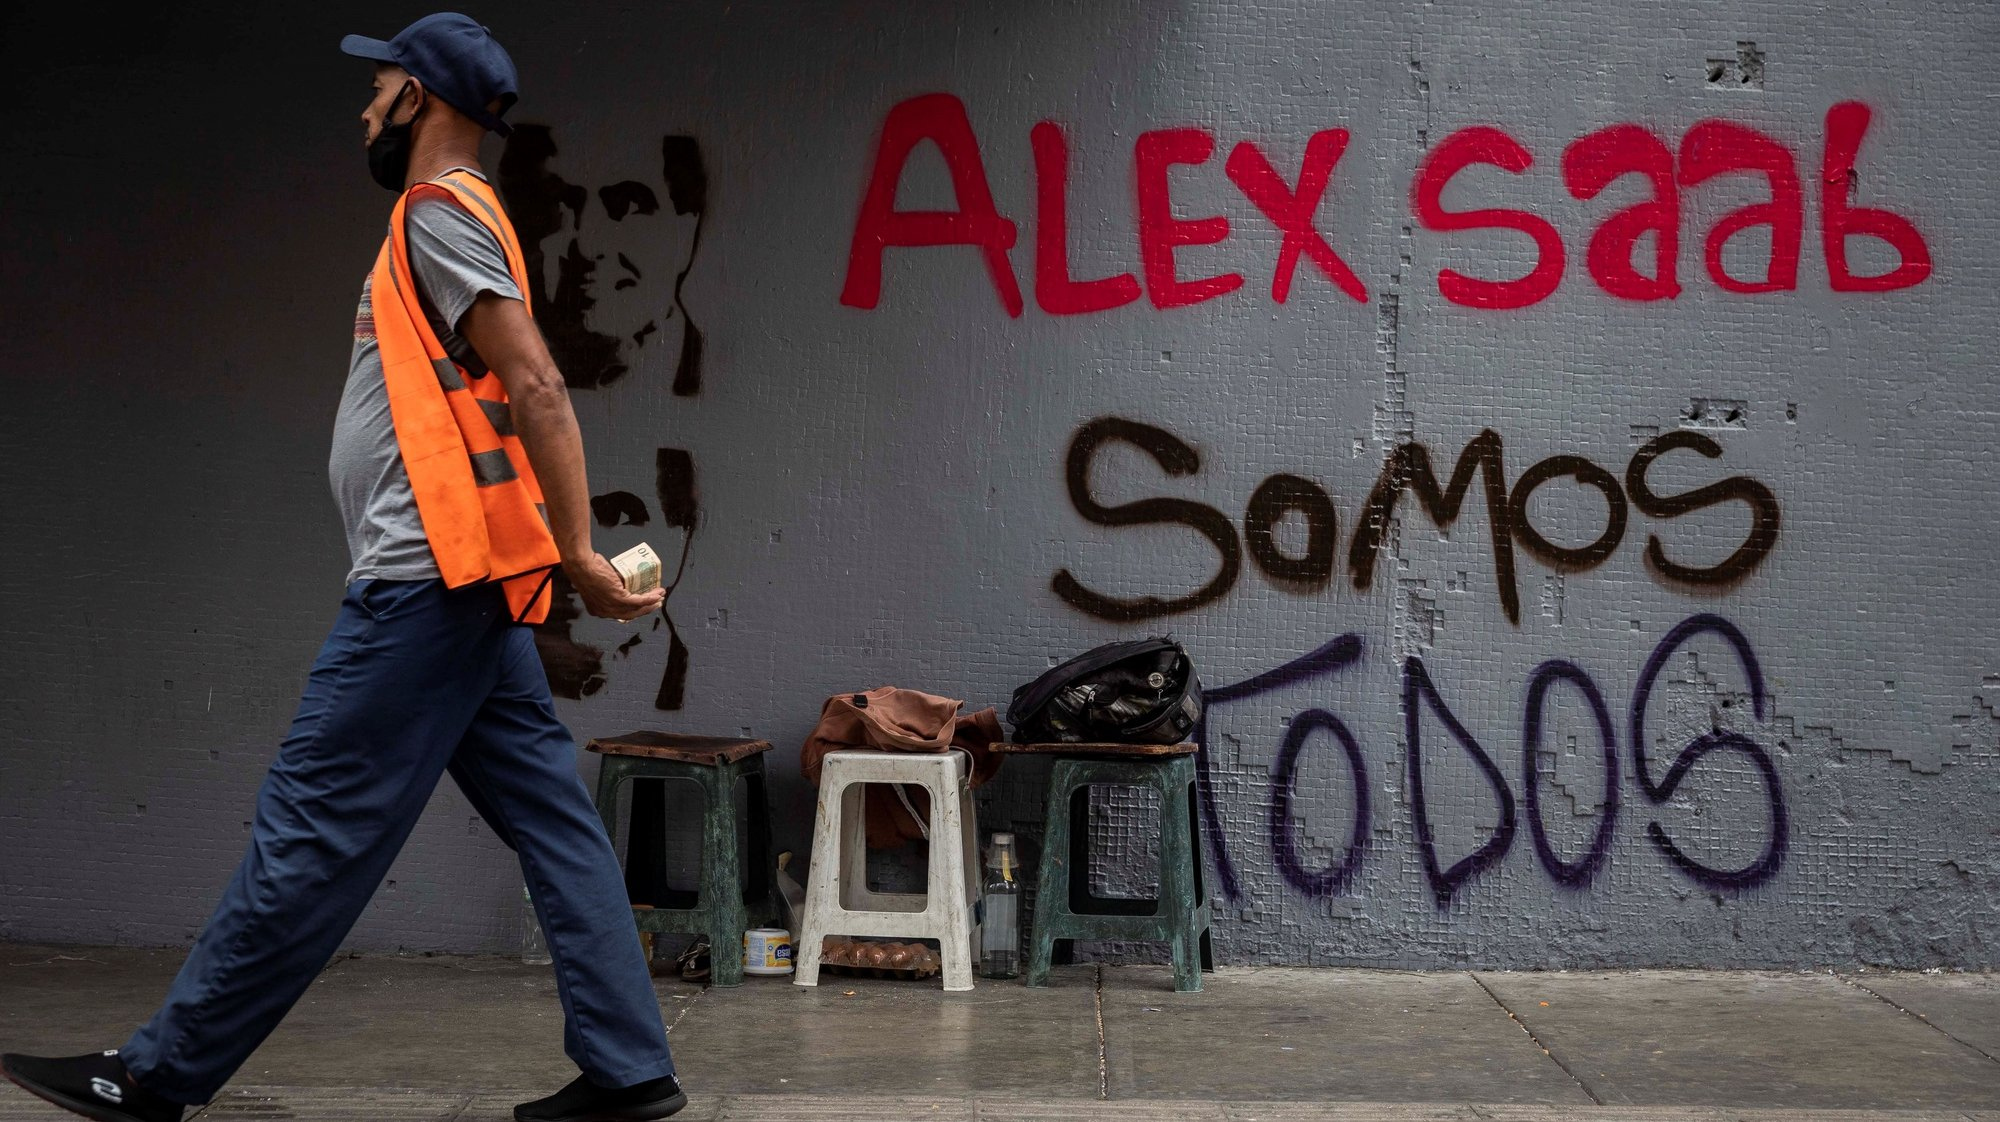 epa09030458 A man walks in front of a graffiti that reads 'We all are Alex Saab', in Caracas, Venezuela, 22 February 2021. Chavista supporters have painted murals in the Venezuelan capital to show their support and request the release of Alex Saab, a Colombian businessman detained in Cape Verde and whom the United States is asking for extradition by accusing him of being a front man for the president of Venezuela, Nicolas Maduro.  EPA/Rayner Pena